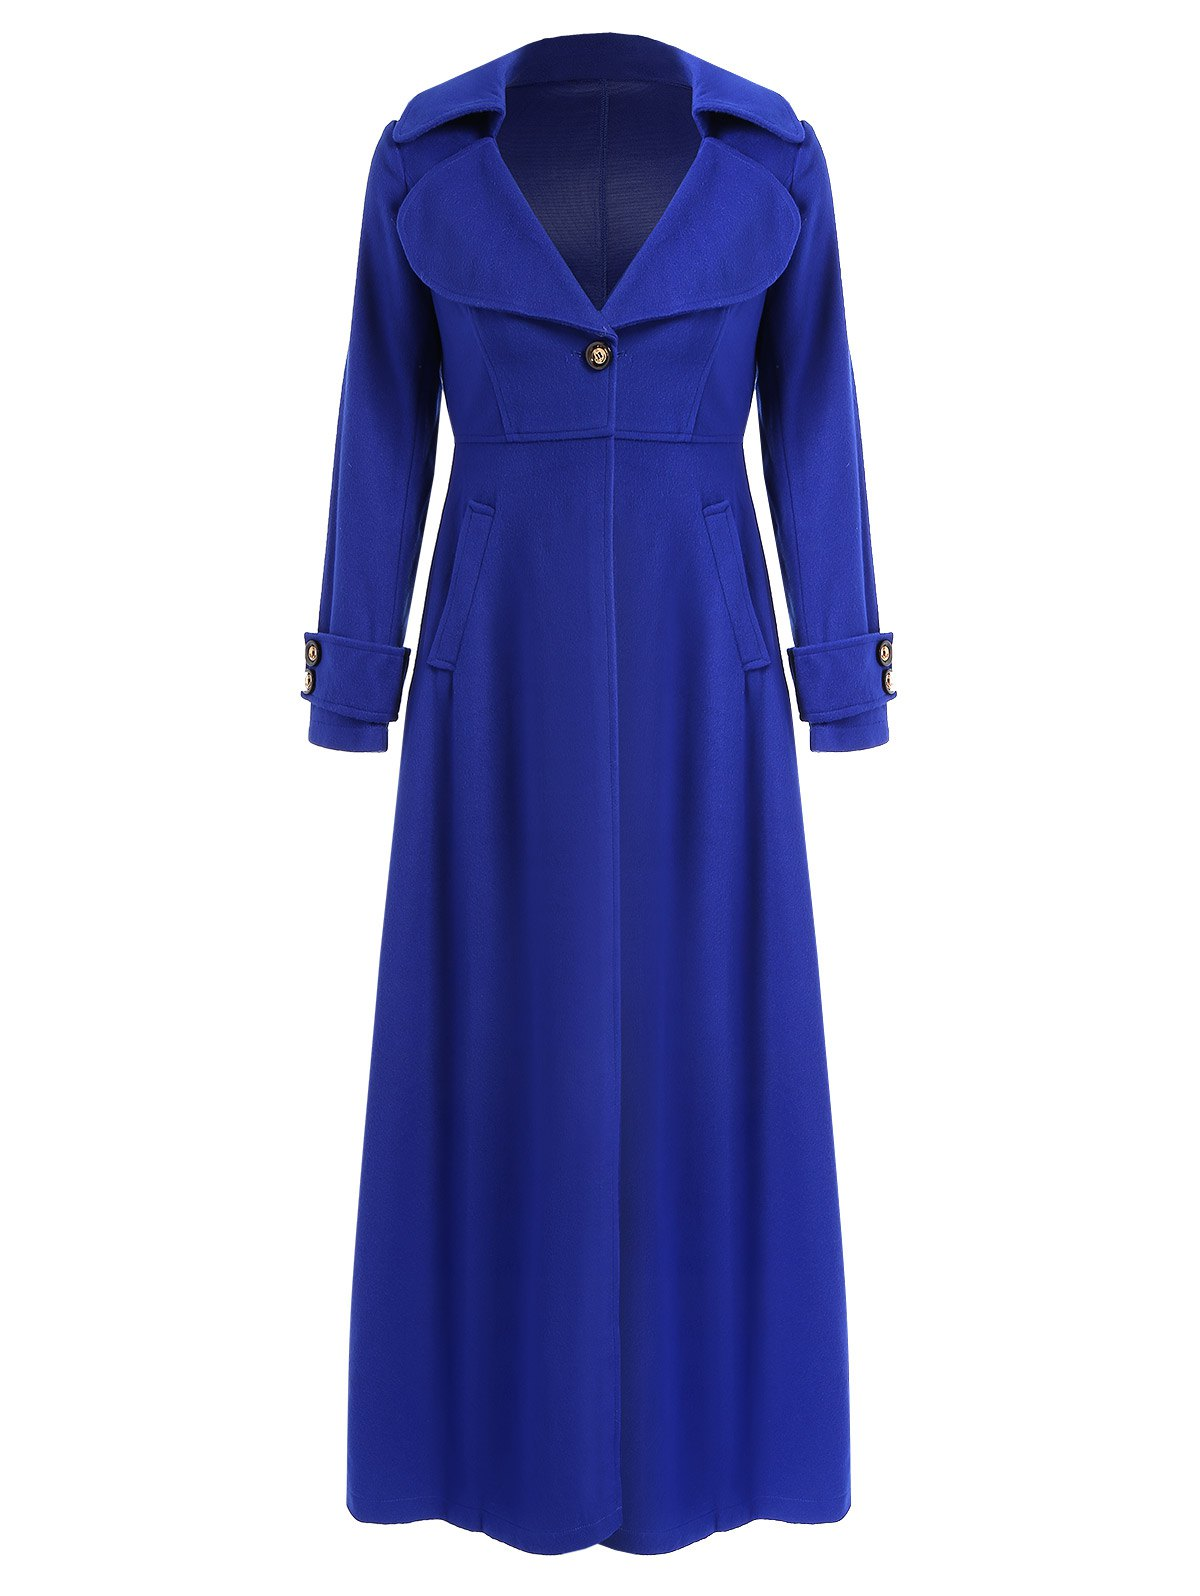 Shops Elegant Solid Color Turn-Down Collar Tunic Maxi Coat For Women